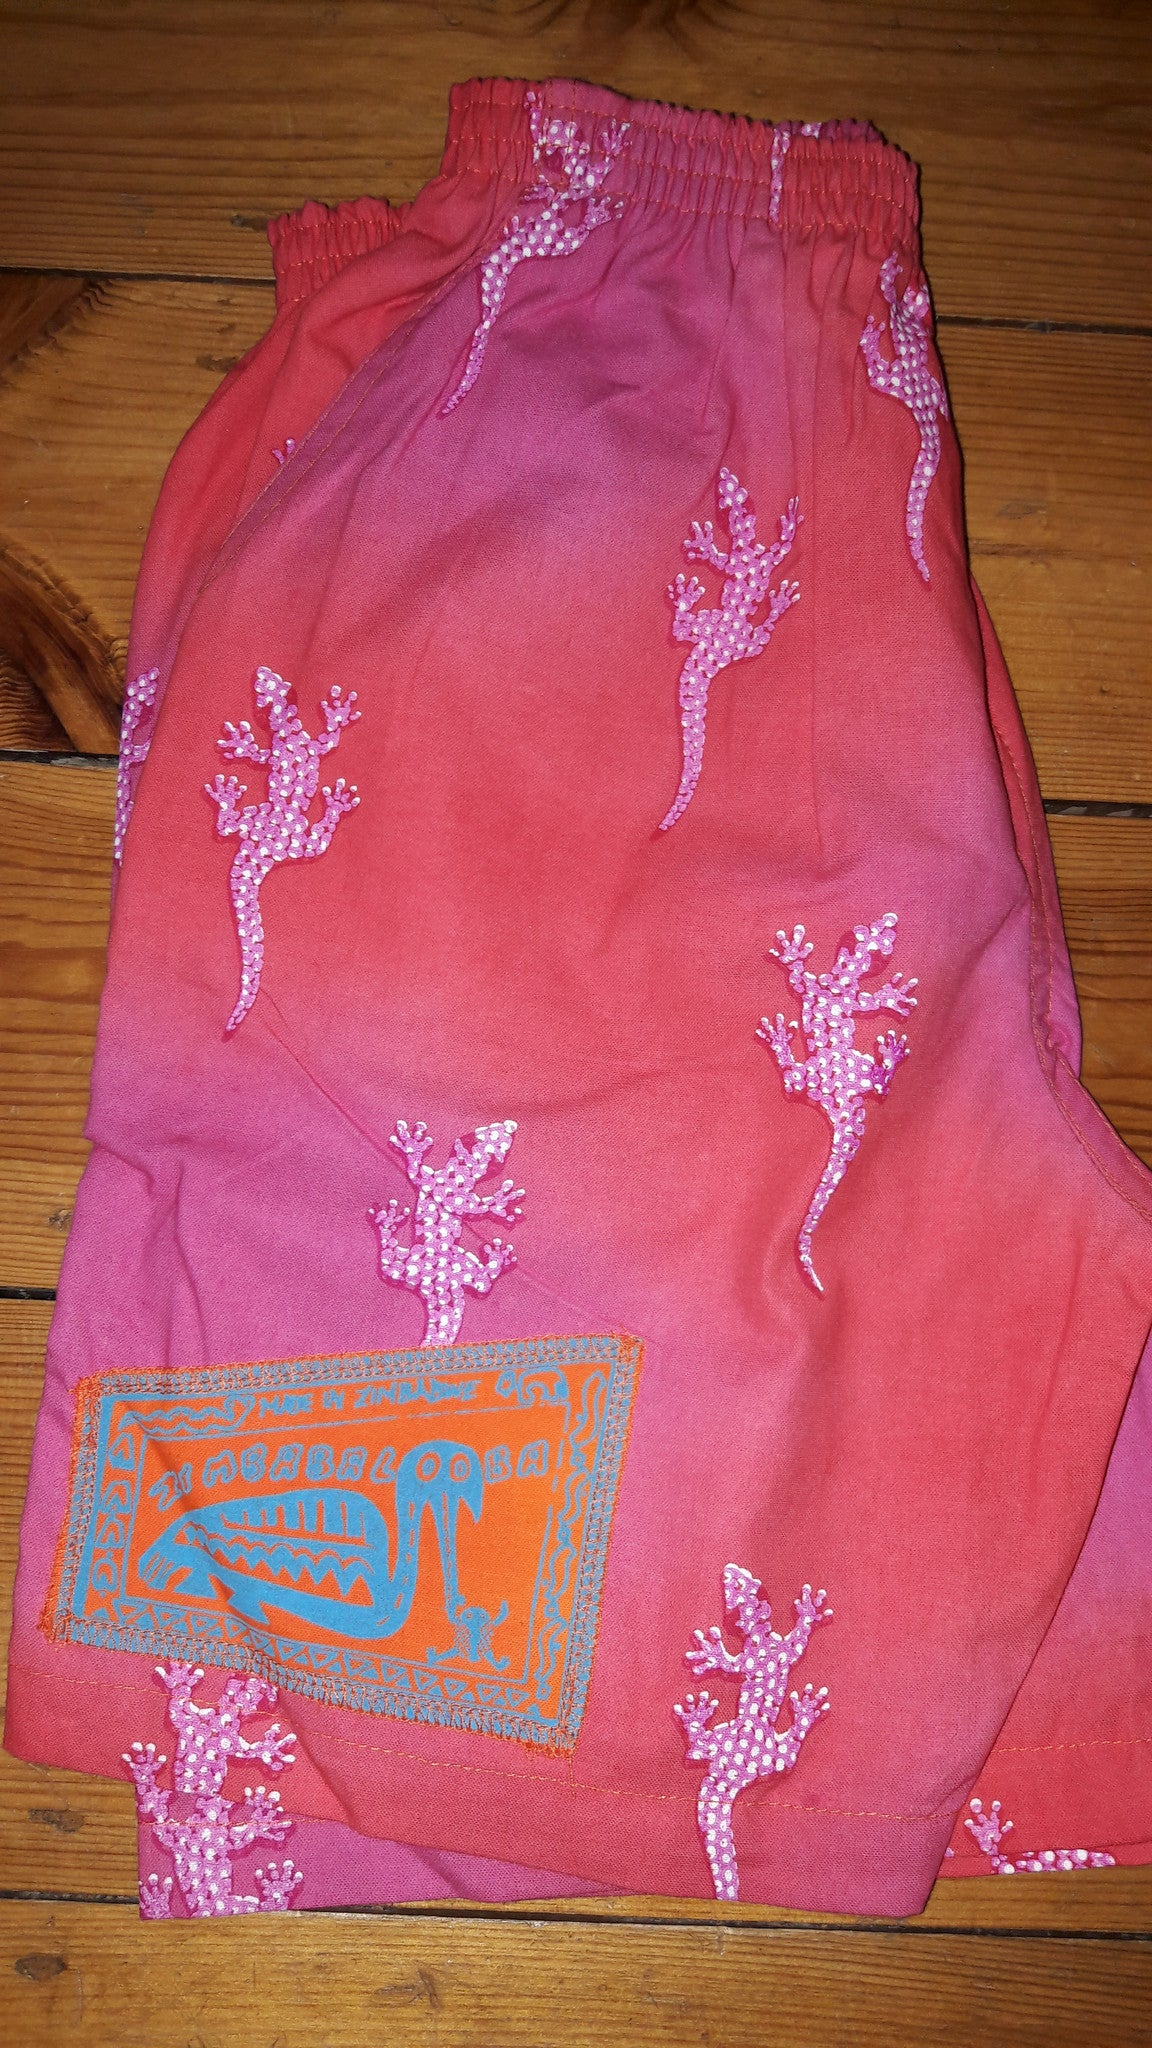 Kid's Shorts - Gecko print - 100% Cotton Baggies